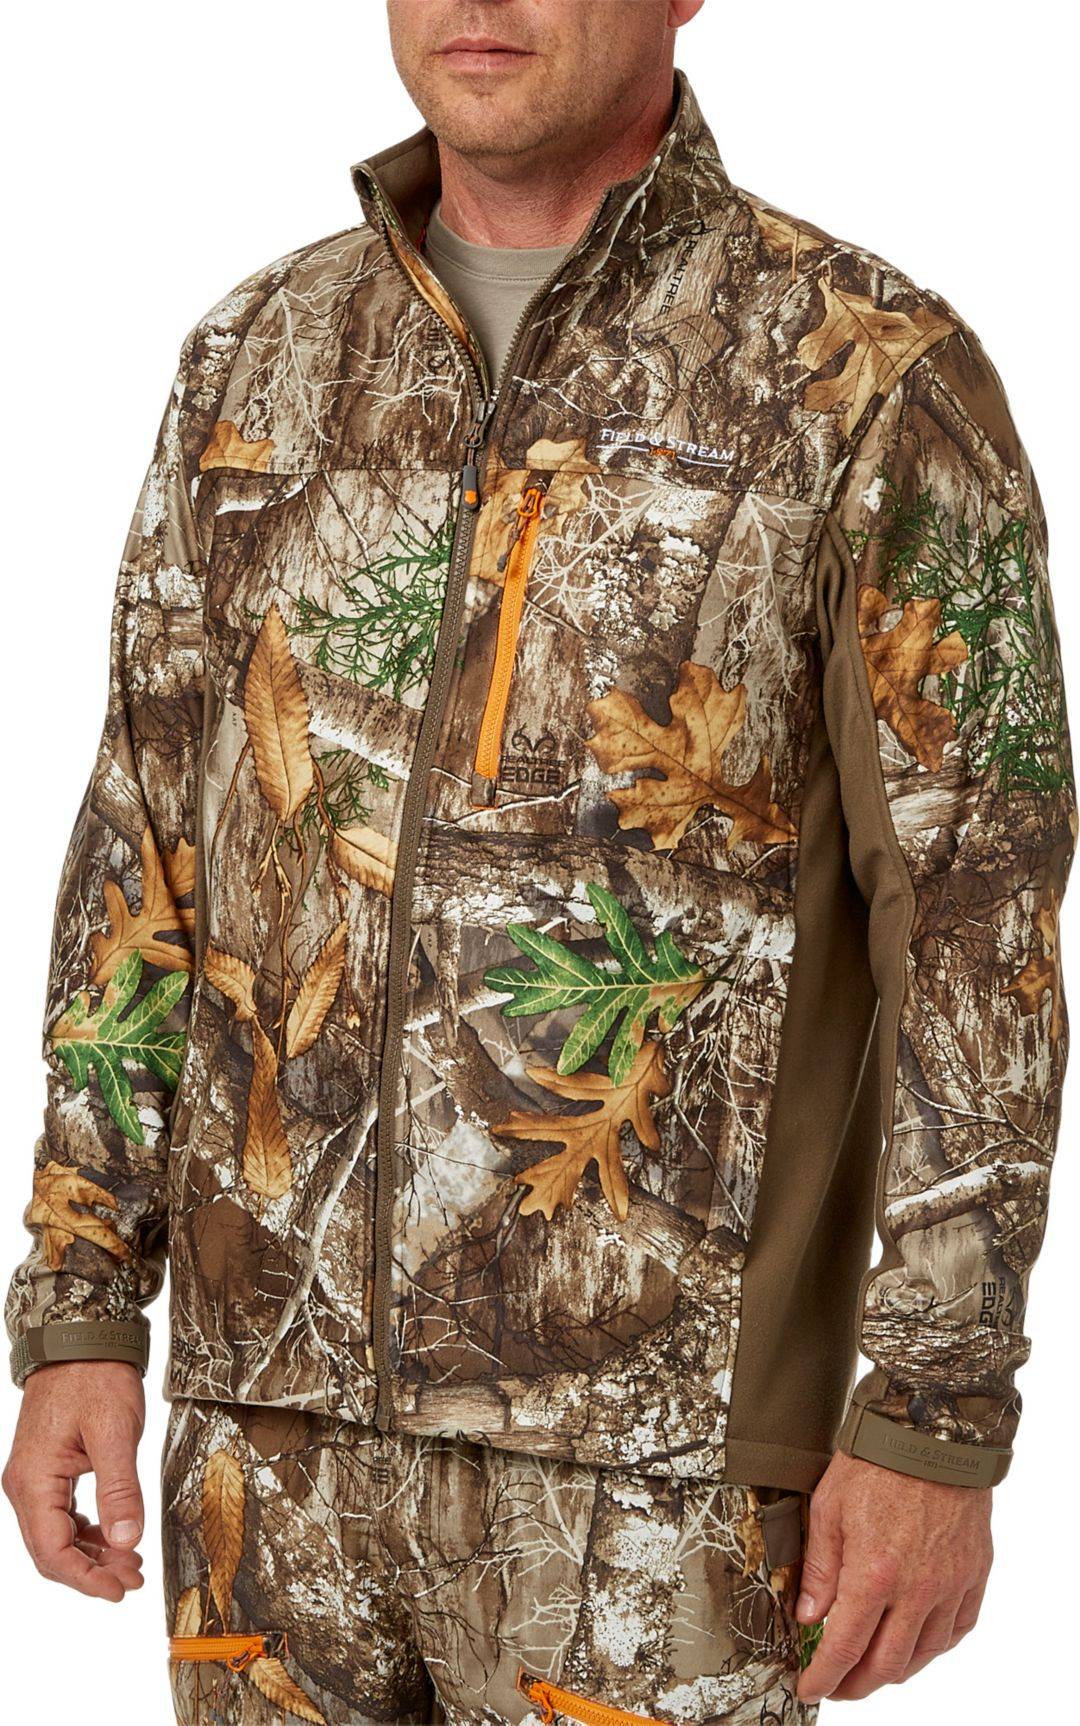 adf9c003e3109 Field & Stream Men's Every Hunt Softshell Jacket. noImageFound. Previous. 1.  2